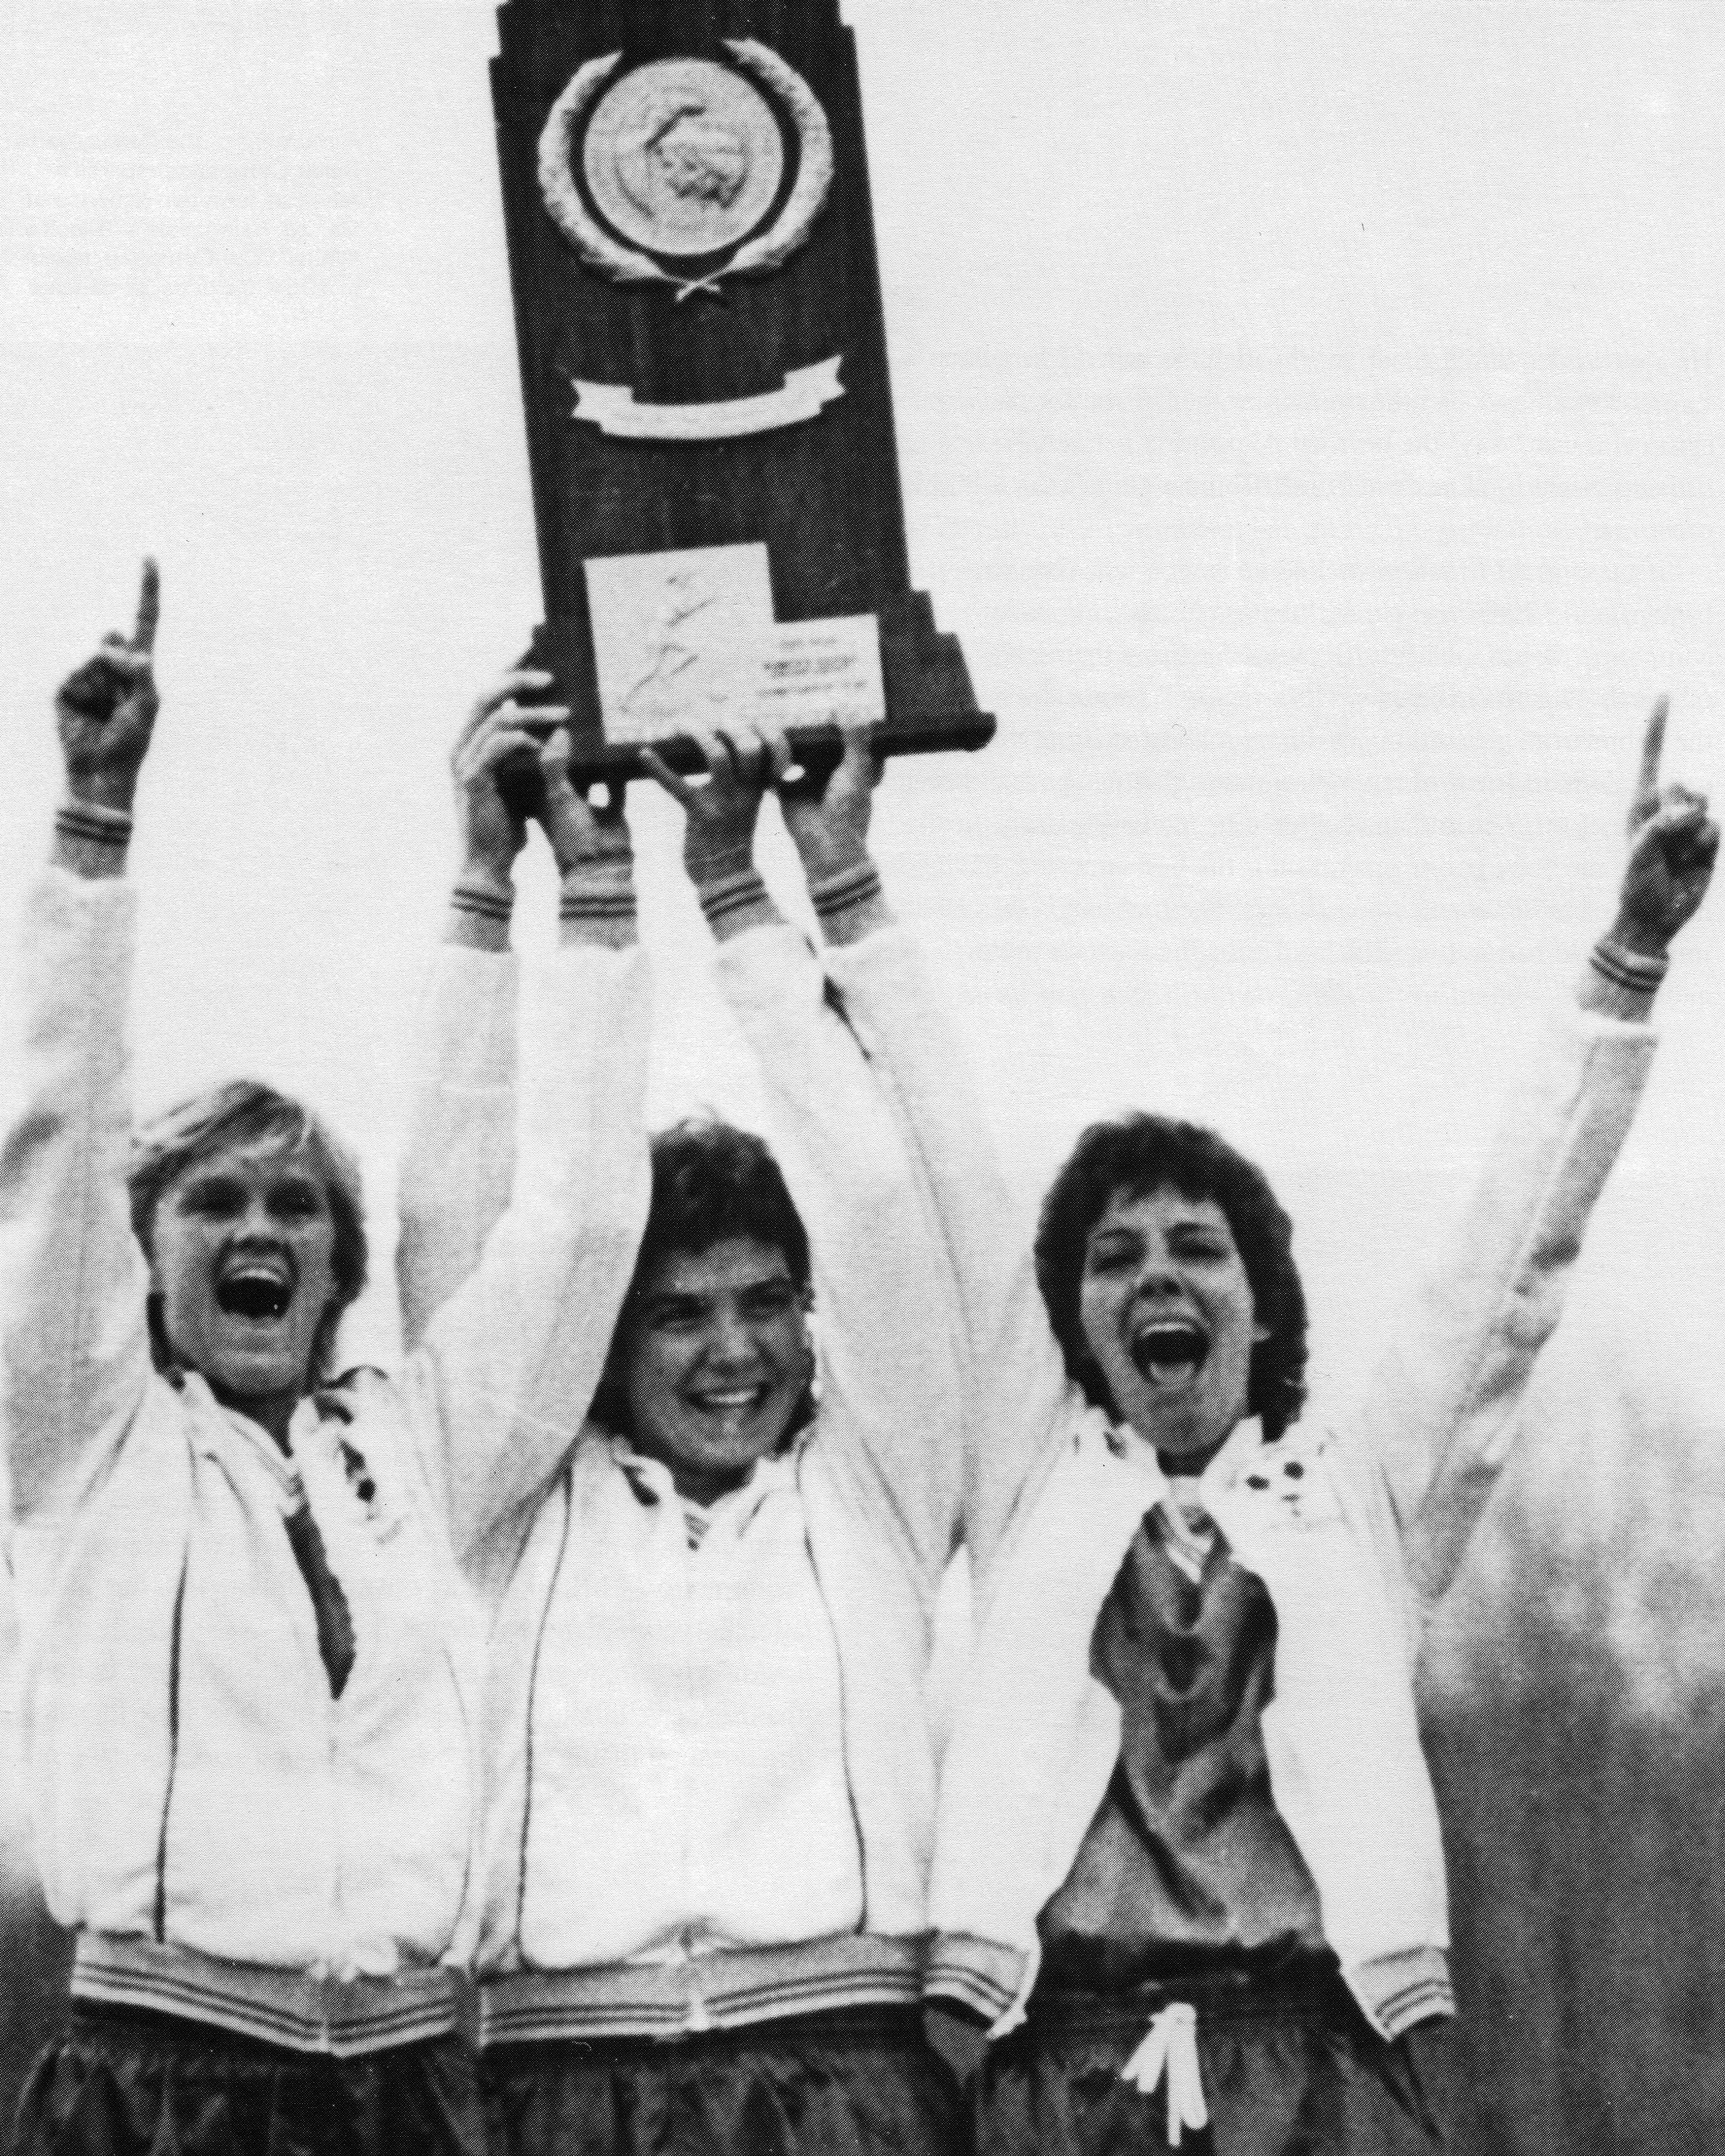 George Mason University Soccer team members (left to right) Sis Koskinen, Pam Baughman, and Meg Romaine lift the NCAA Division I National Championship trophy. Mason Magazine, George Mason University Archives, University Publications, Special Collections Research Center, George Mason University Libraries.